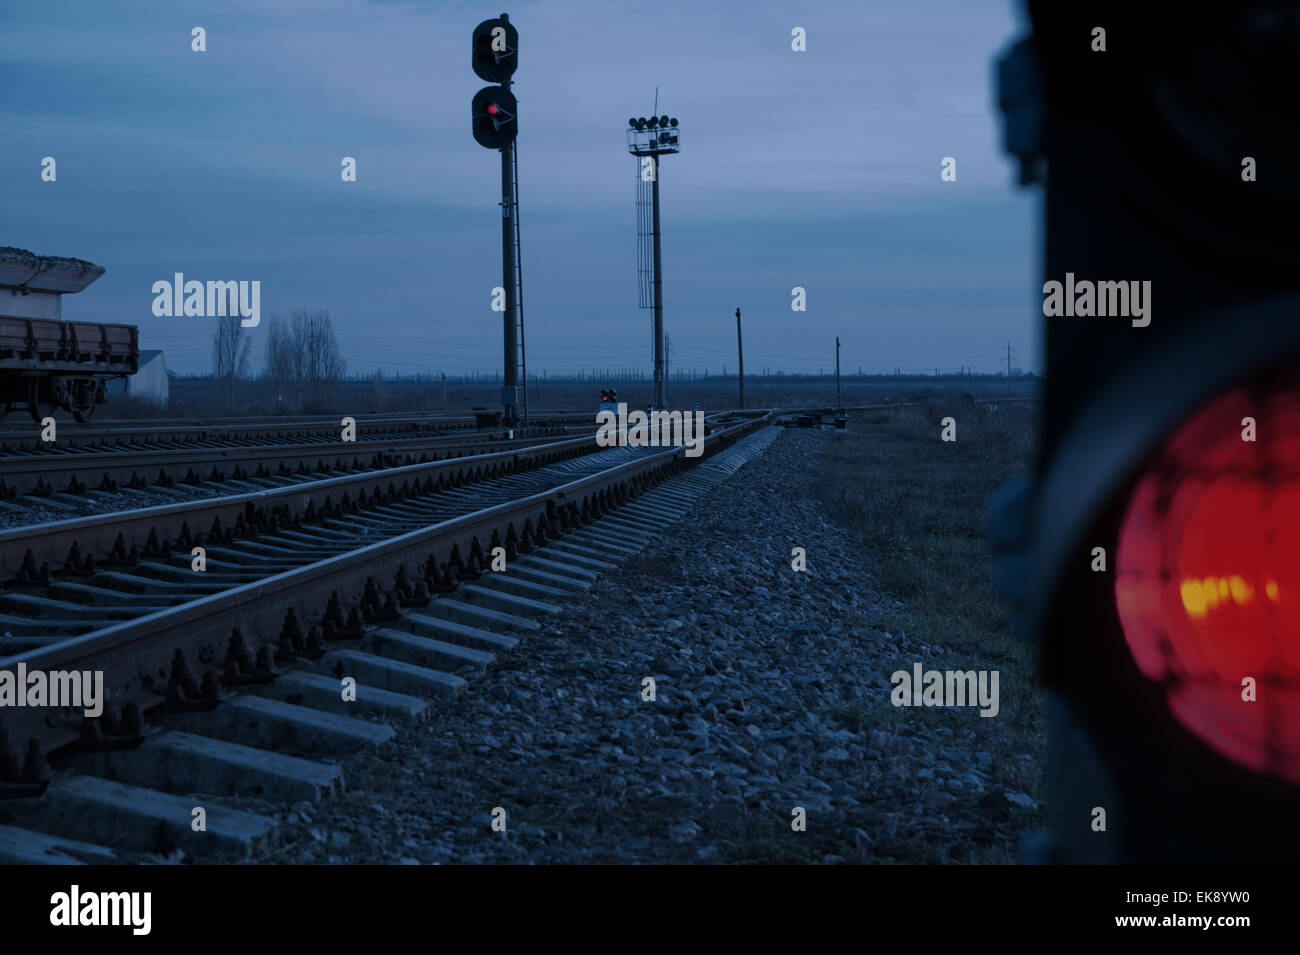 stop signal lamp in dusk - Stock Image